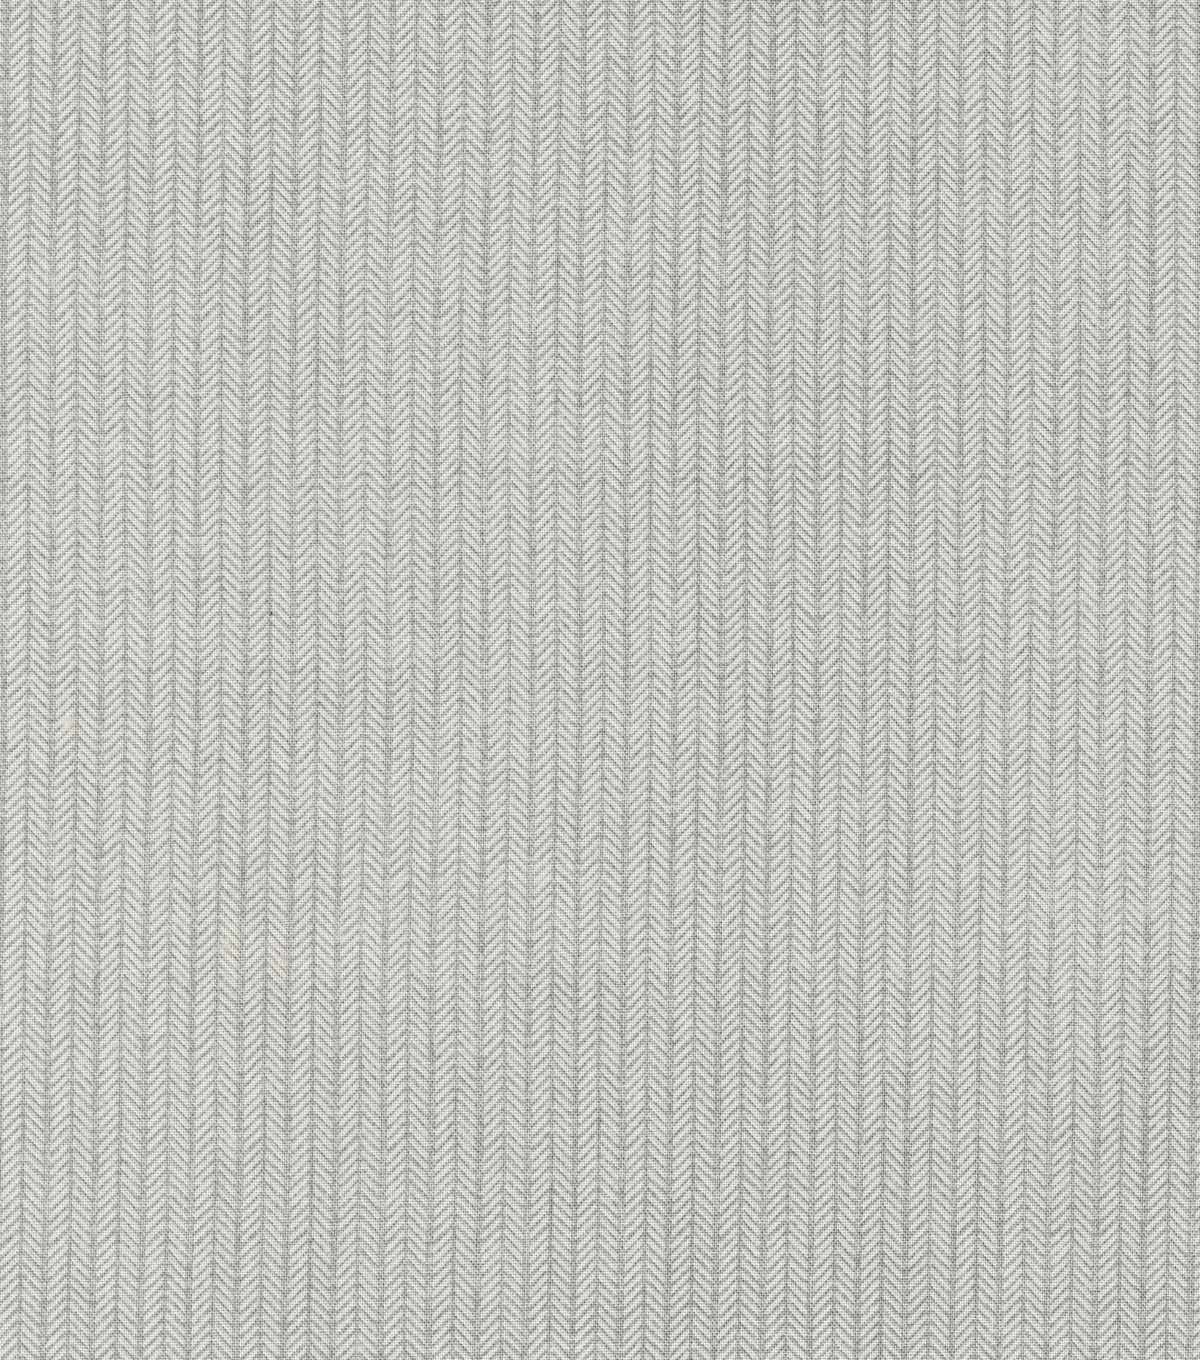 Keepsake Calico™ Cotton Fabric-Print Chevron Grey